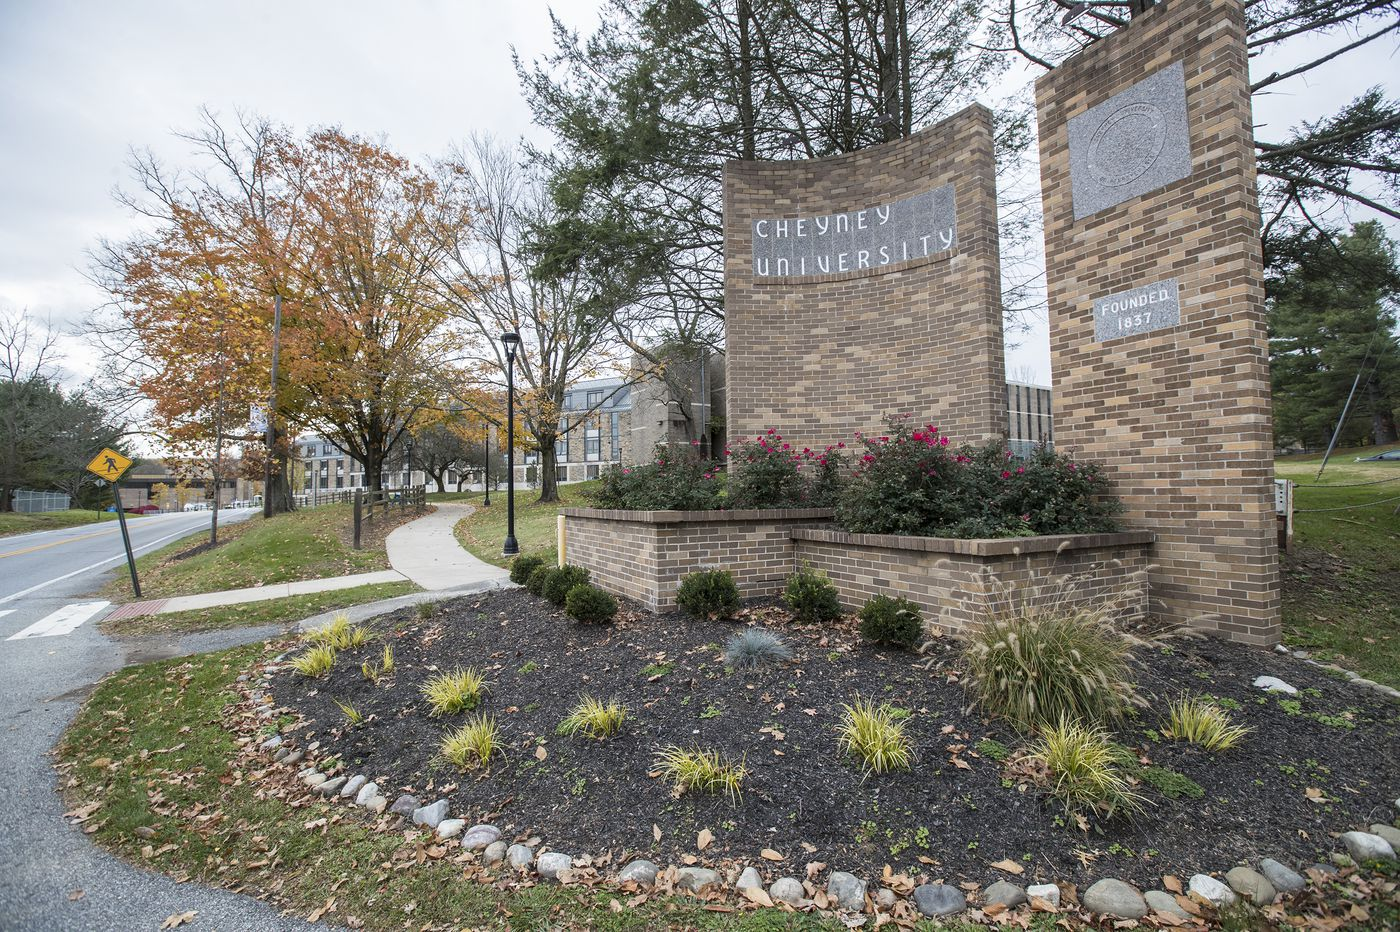 A boost for Cheyney University: The school will keep its accreditation